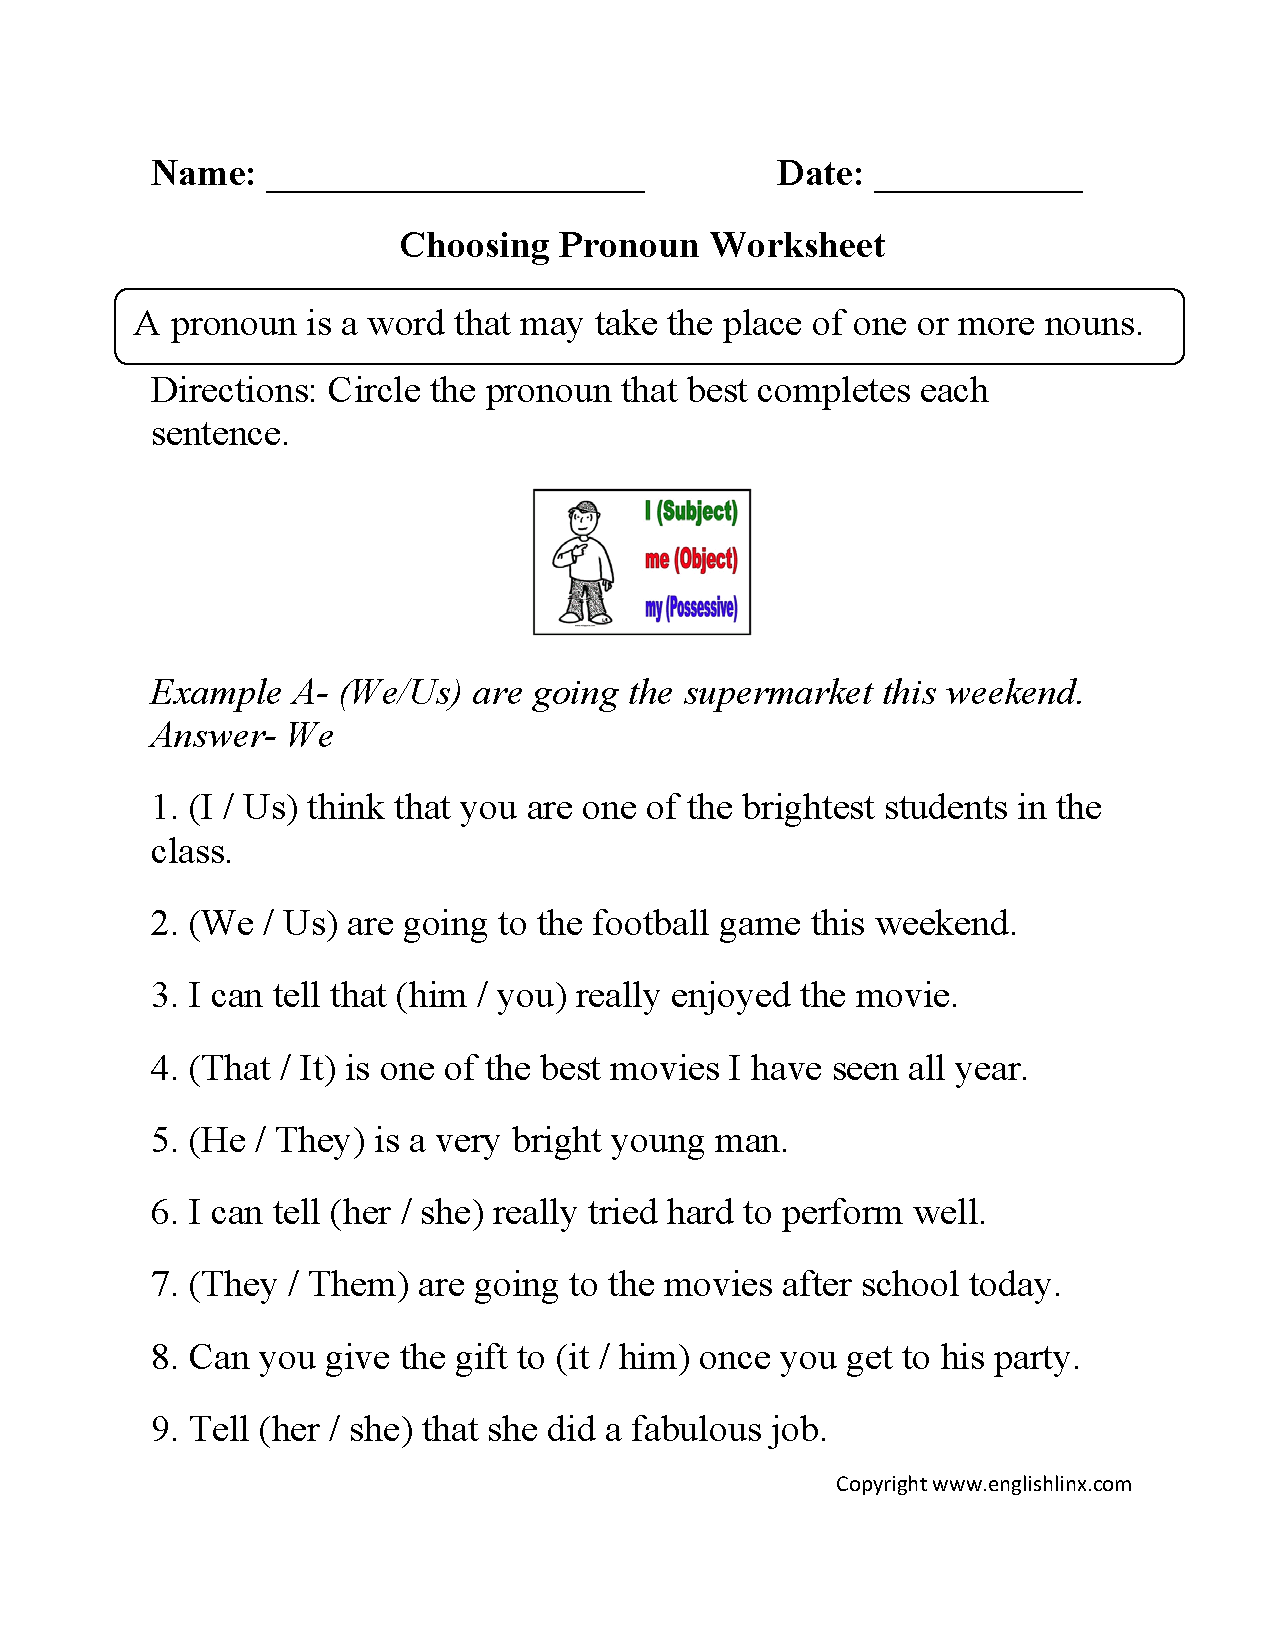 Worksheets 8 Parts Of Speech Worksheet grammar worksheets parts of speech pronoun worksheets